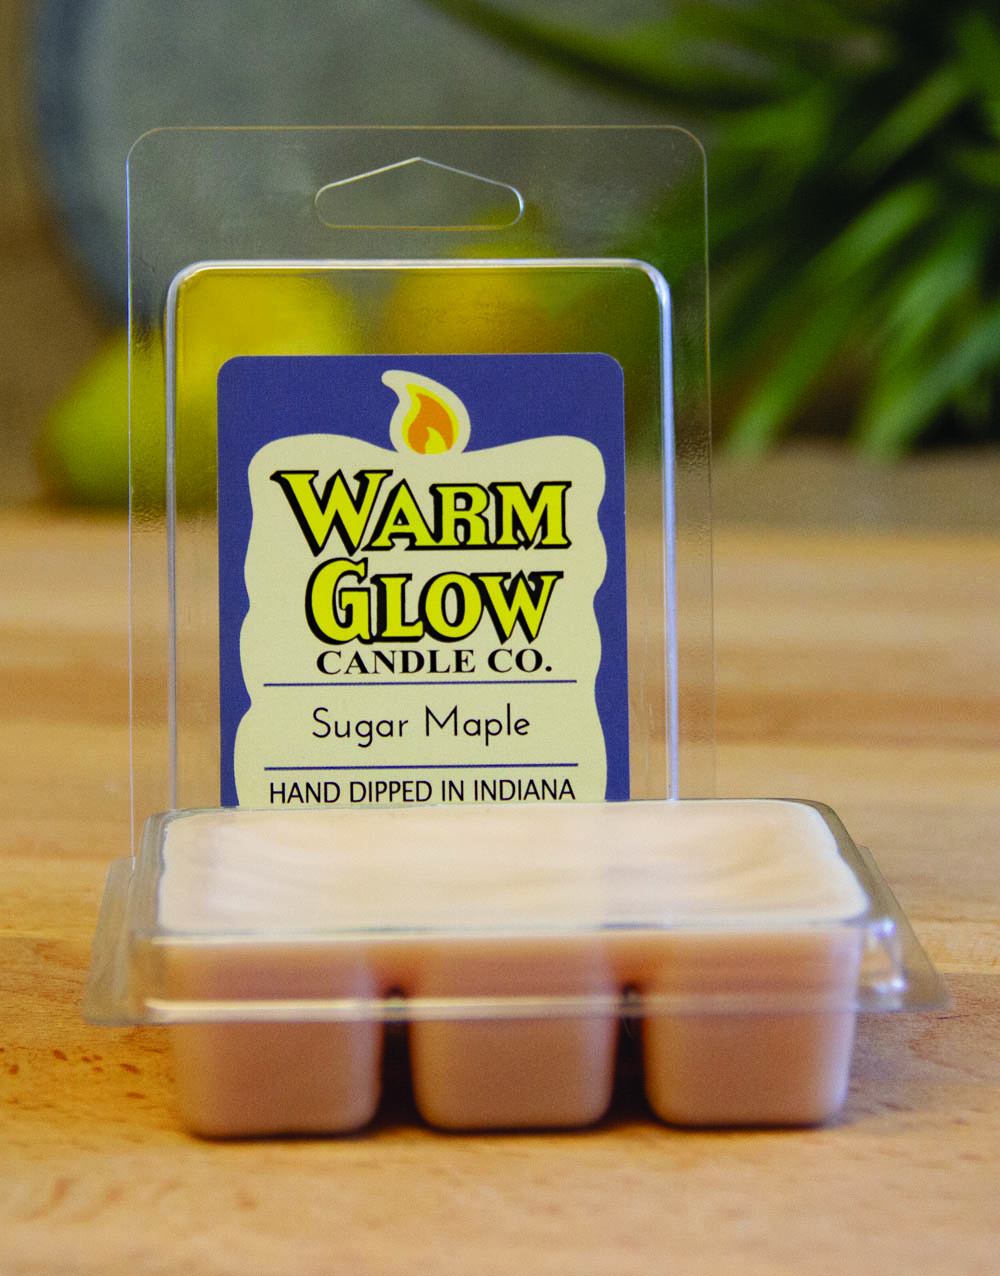 Sugar Maple wax melts